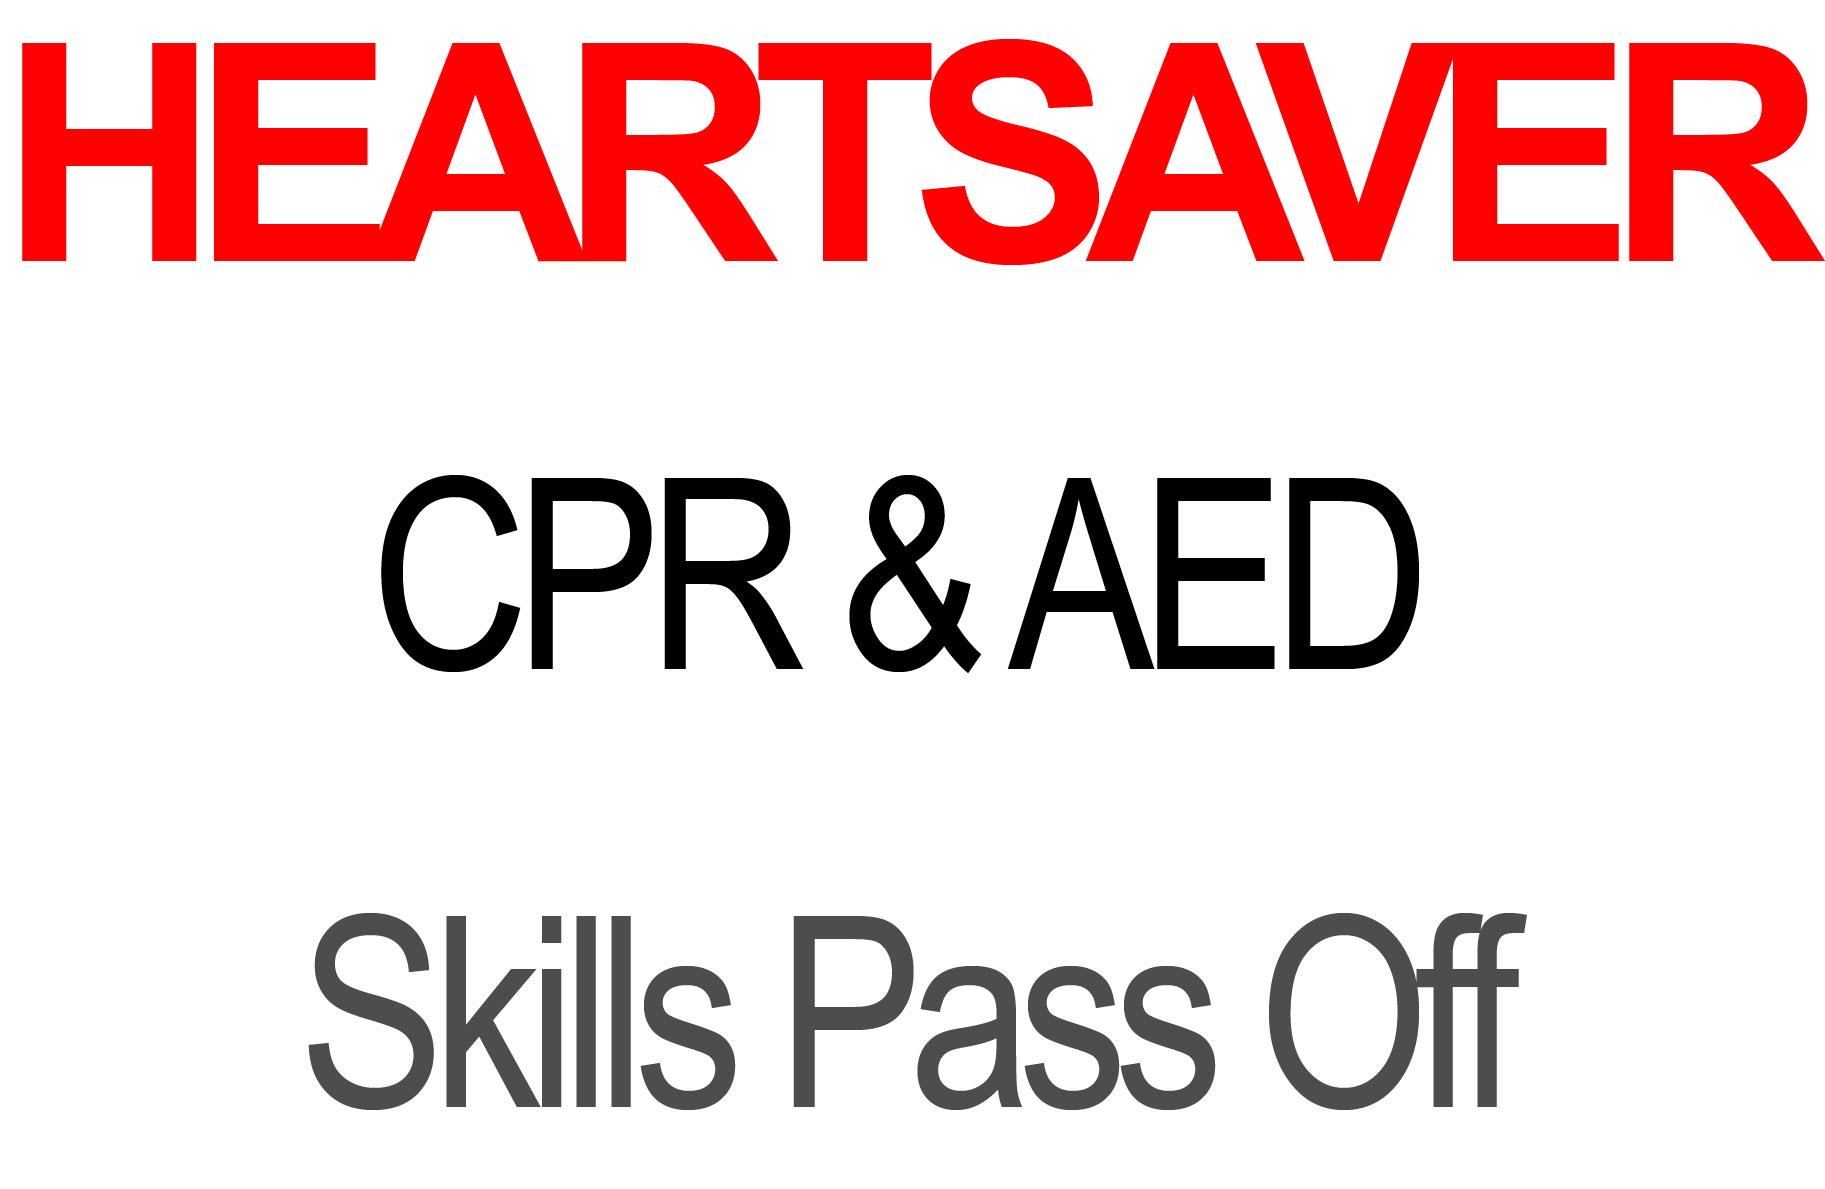 Heartsaver Cpr And Aed Skills Pass Off With Certification Card